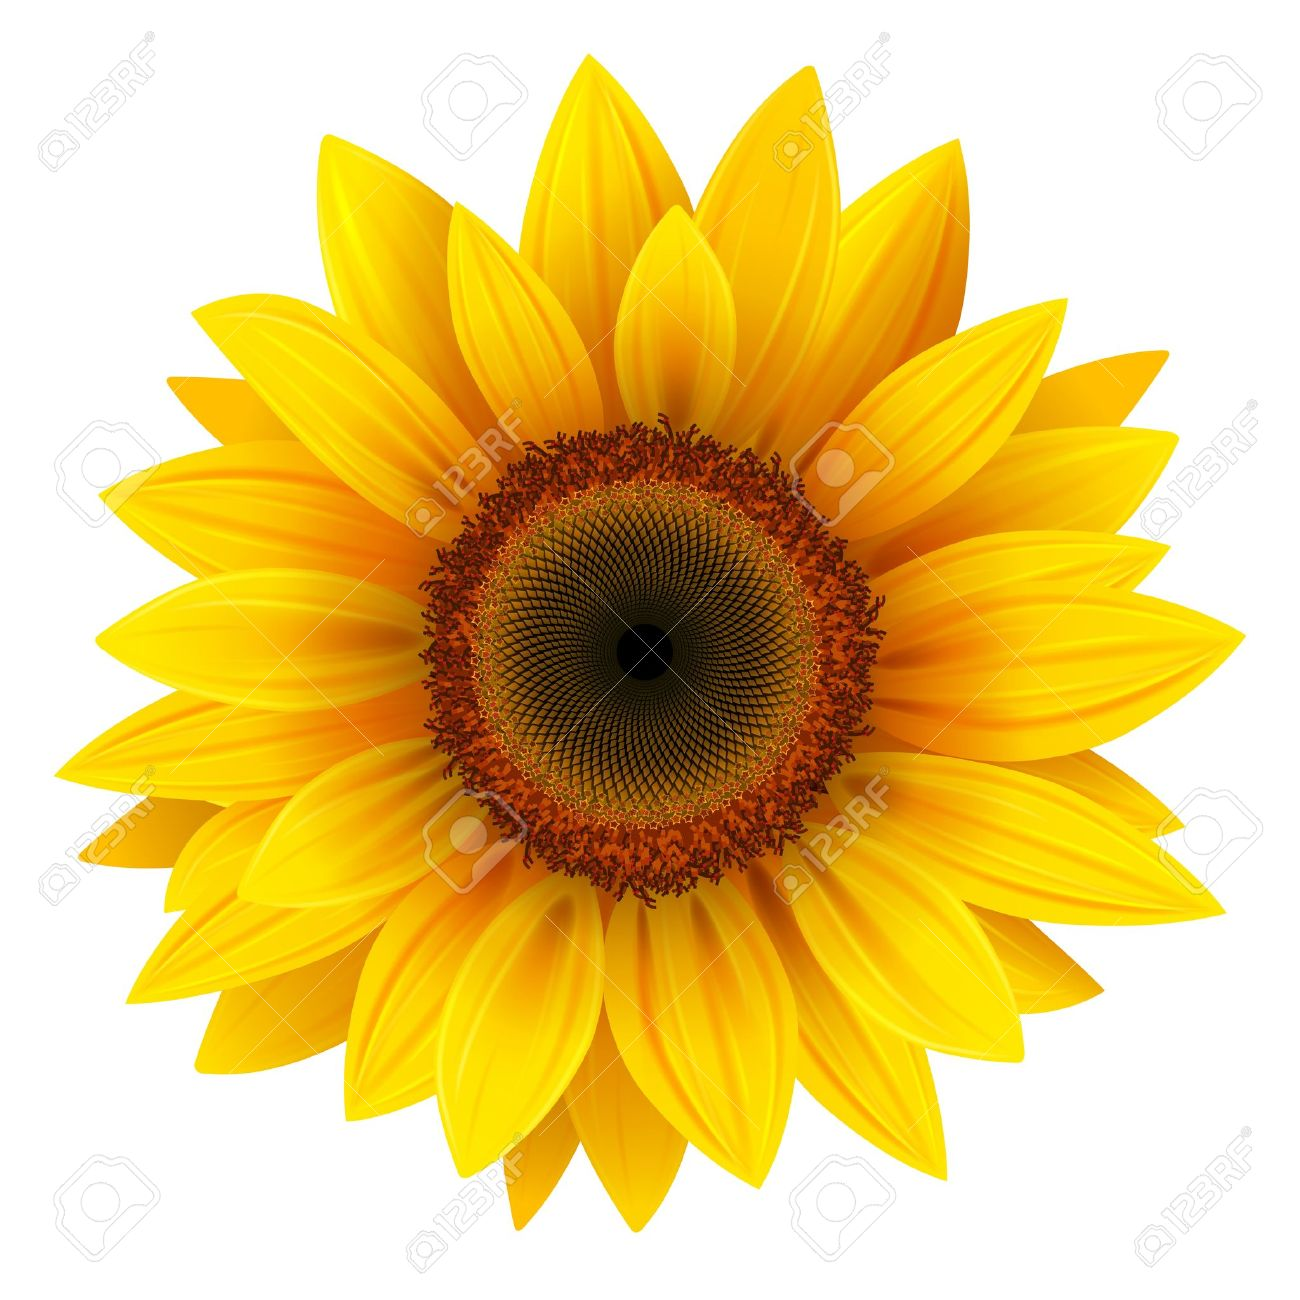 31 978 sunflower cliparts stock vector and royalty free sunflower rh 123rf com sunflower clip art free images sunflower clipart images